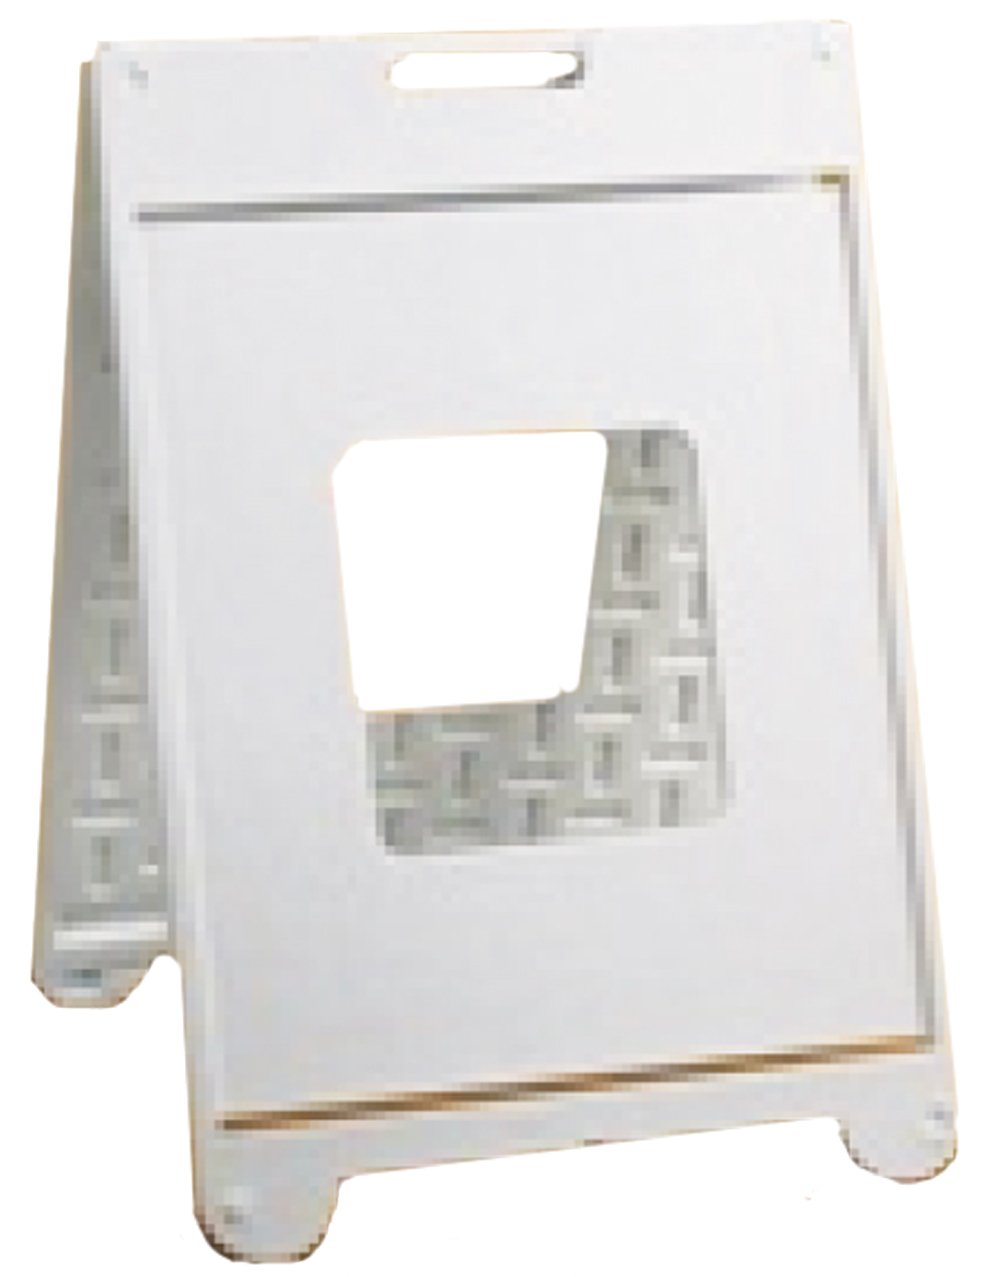 Lynch Signs 22 in. x 28 in. White Plastic Simpo Sign II by Lynch Signs (Image #1)